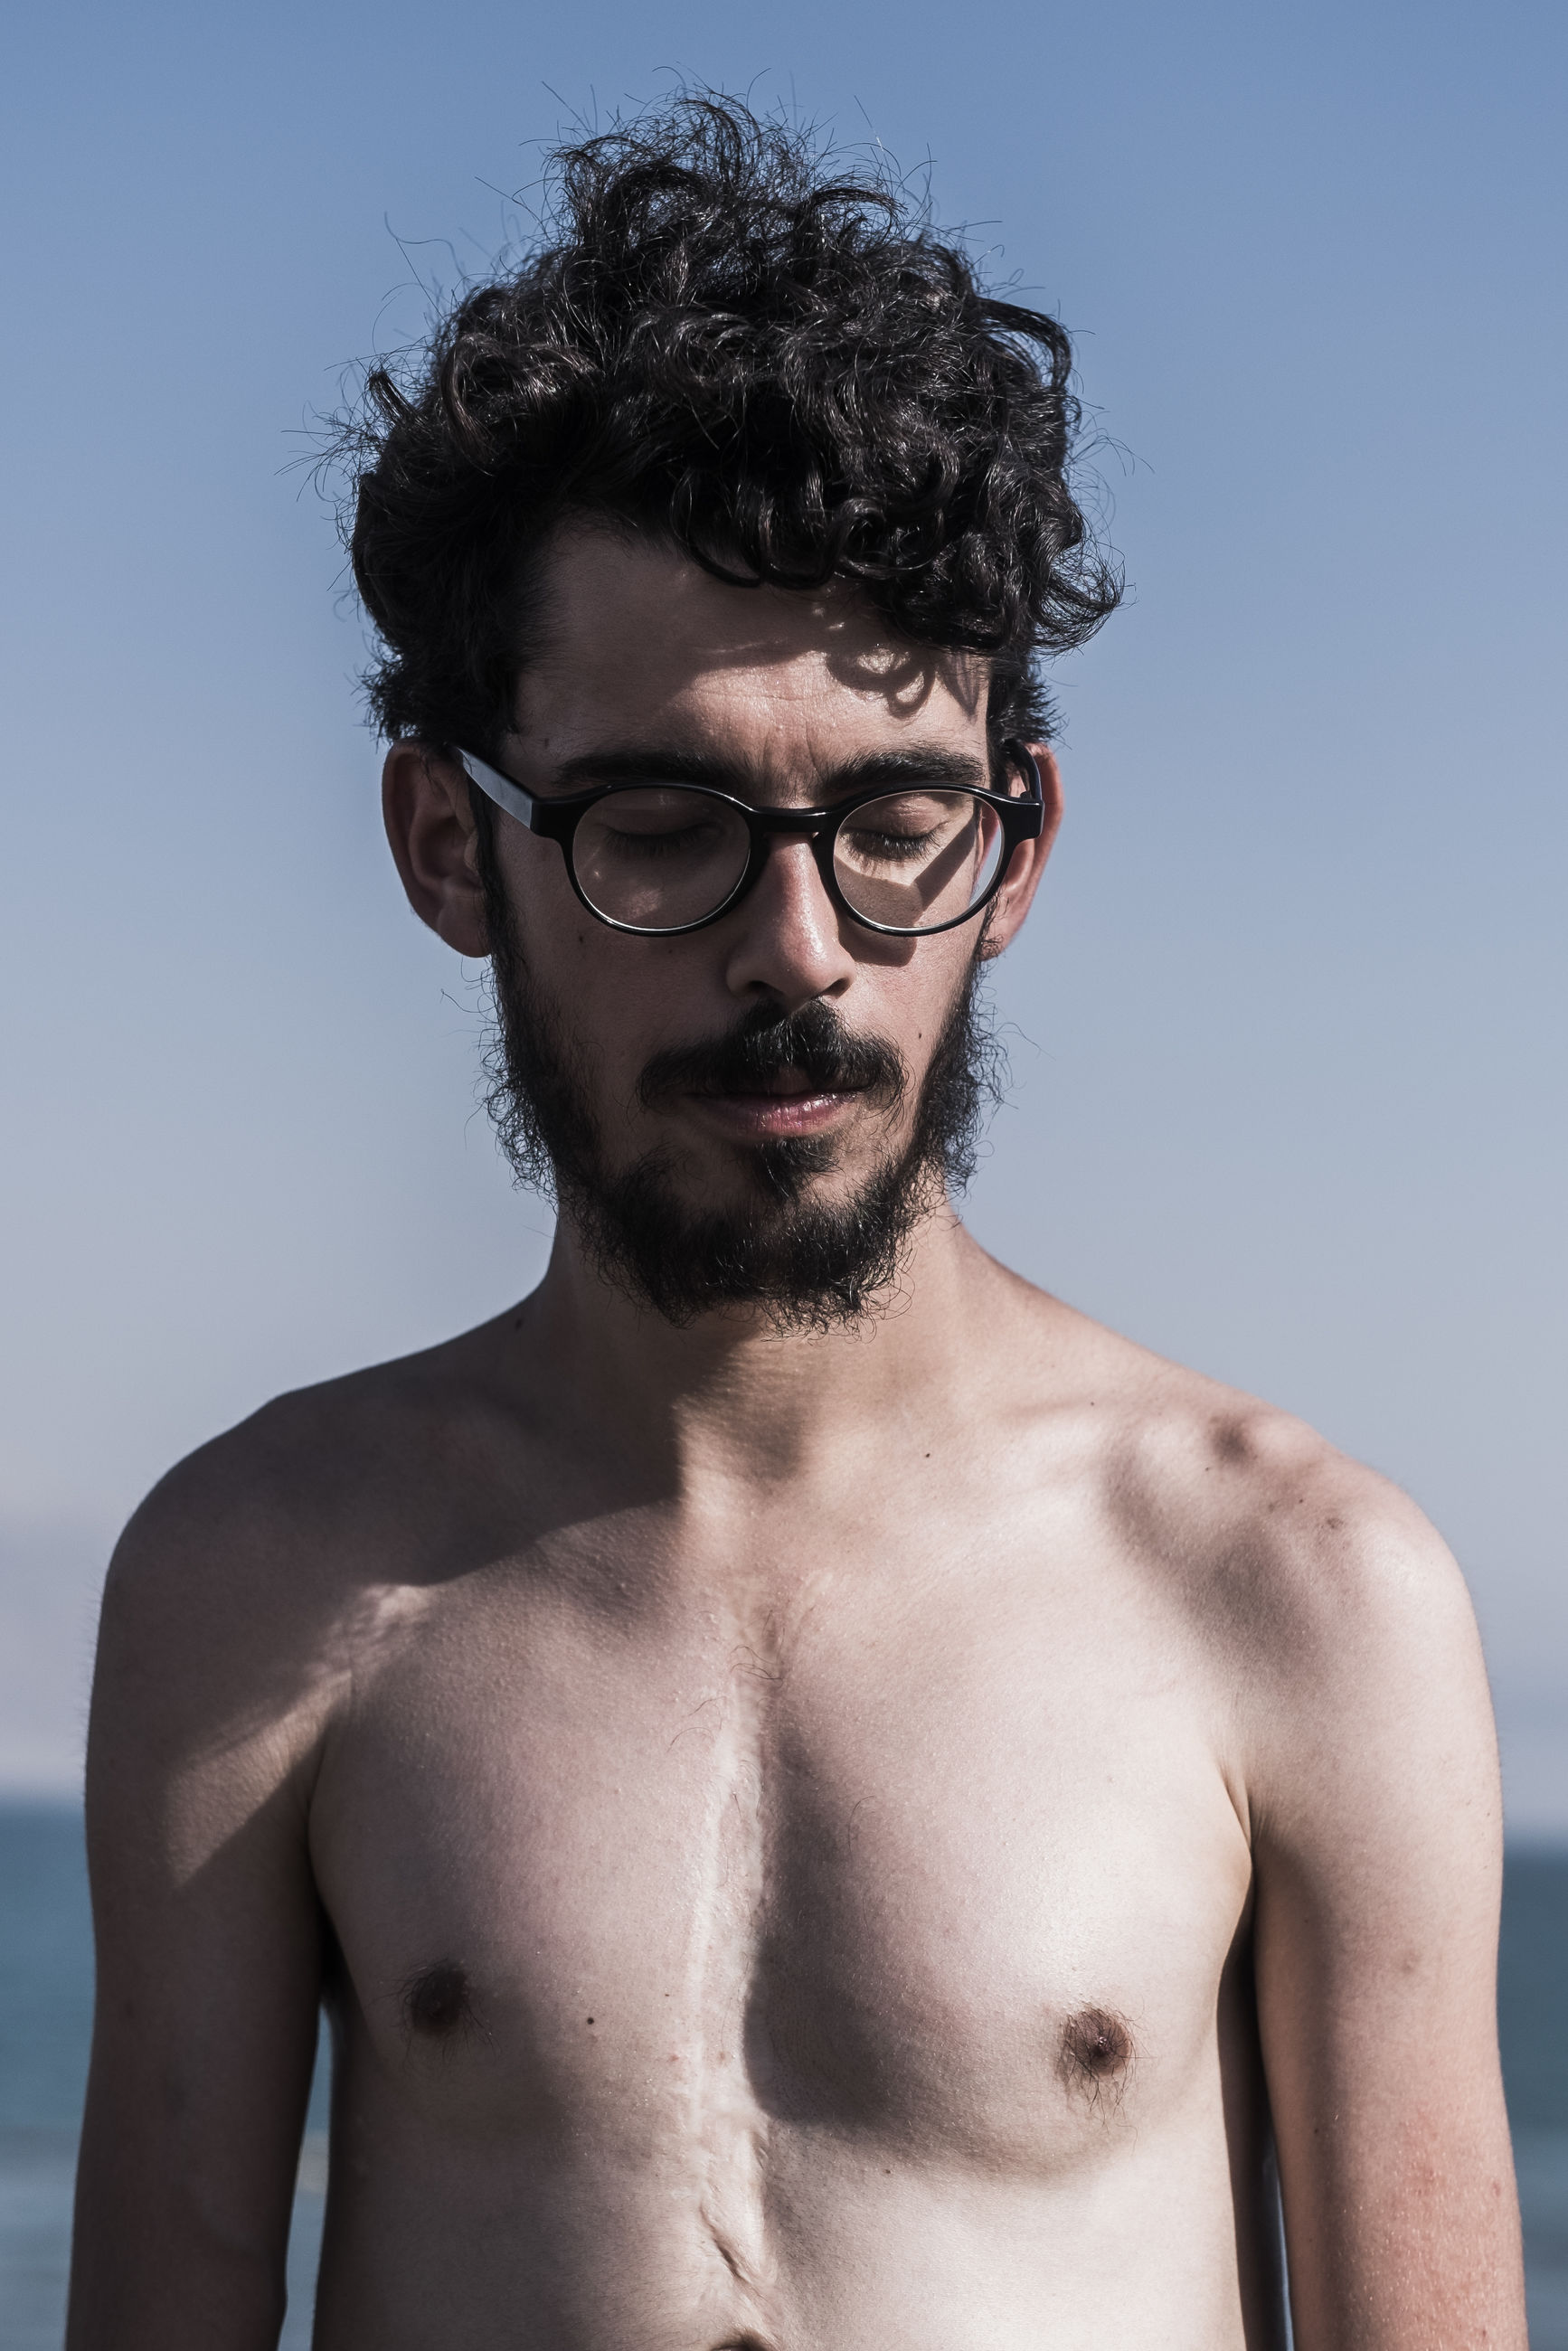 portrait, young adult, looking at camera, person, young men, front view, lifestyles, headshot, leisure activity, smiling, mid adult, beard, sunglasses, shirtless, mid adult men, head and shoulders, confidence